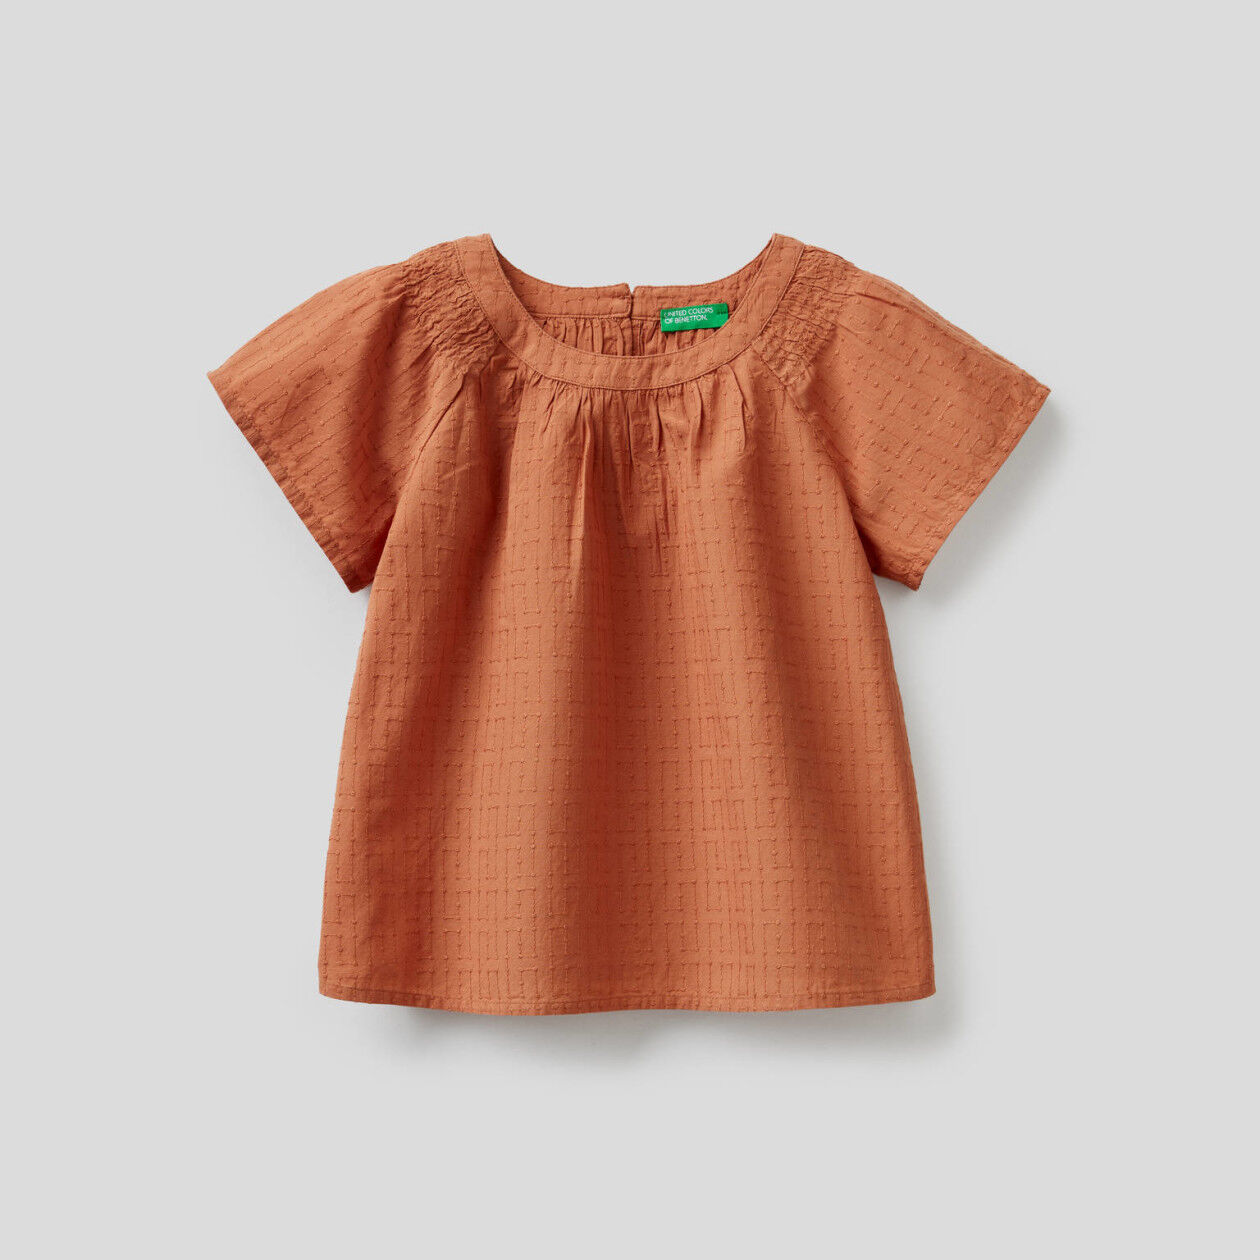 Embroidered blouse in 100% cotton